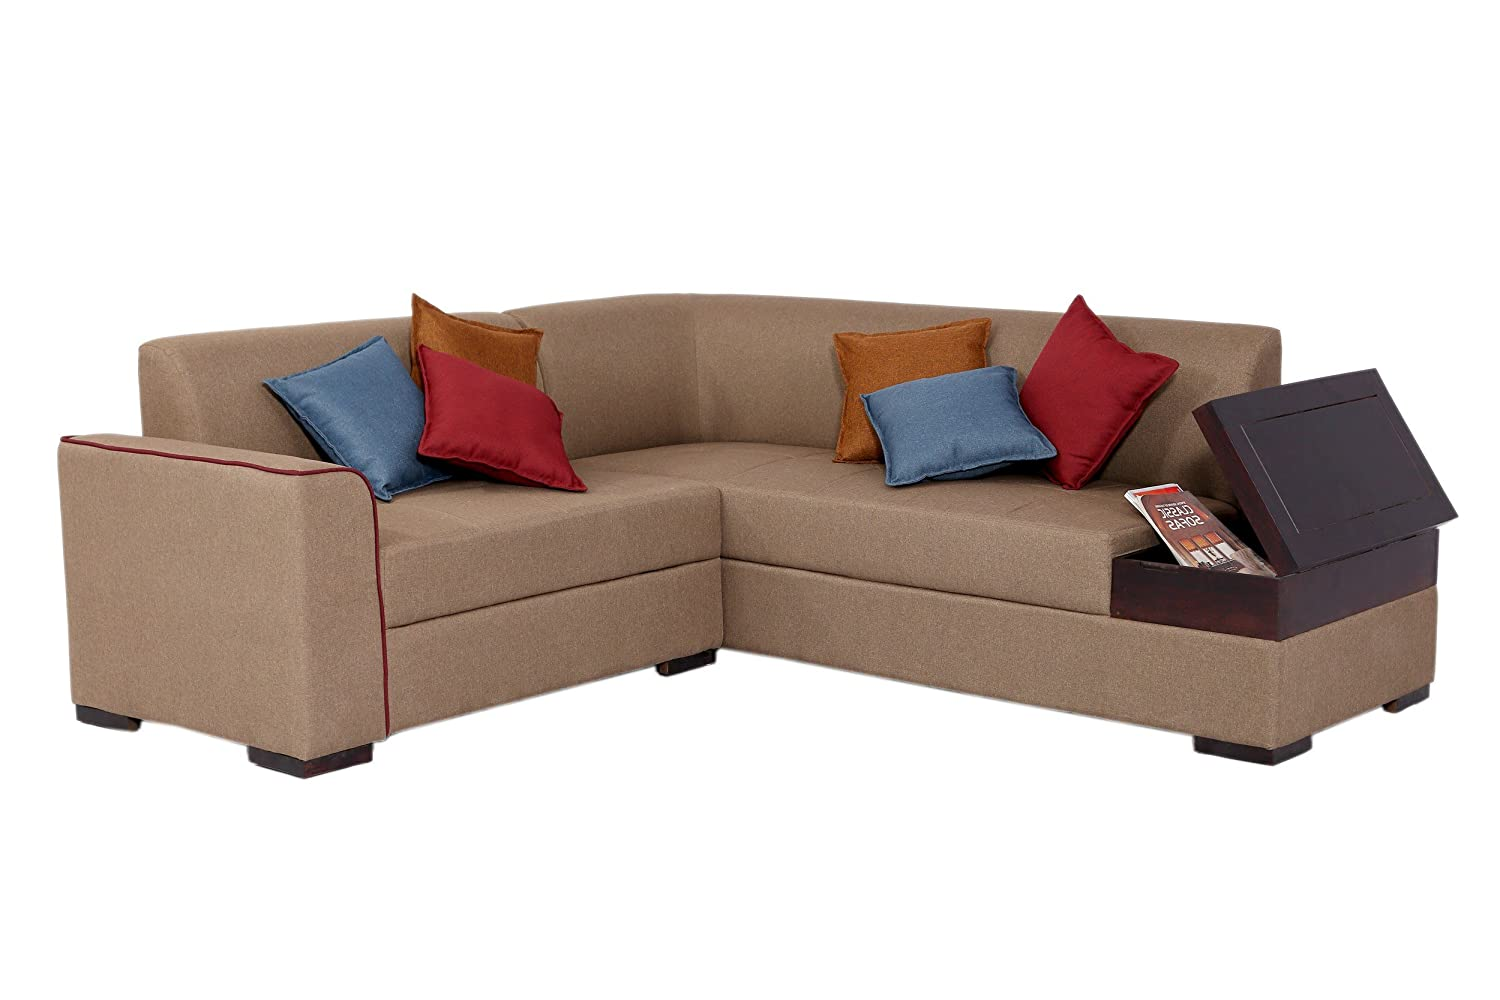 Muebles Casa Coral CASA005 Five Seater Sofa with Storage (Light Brown)